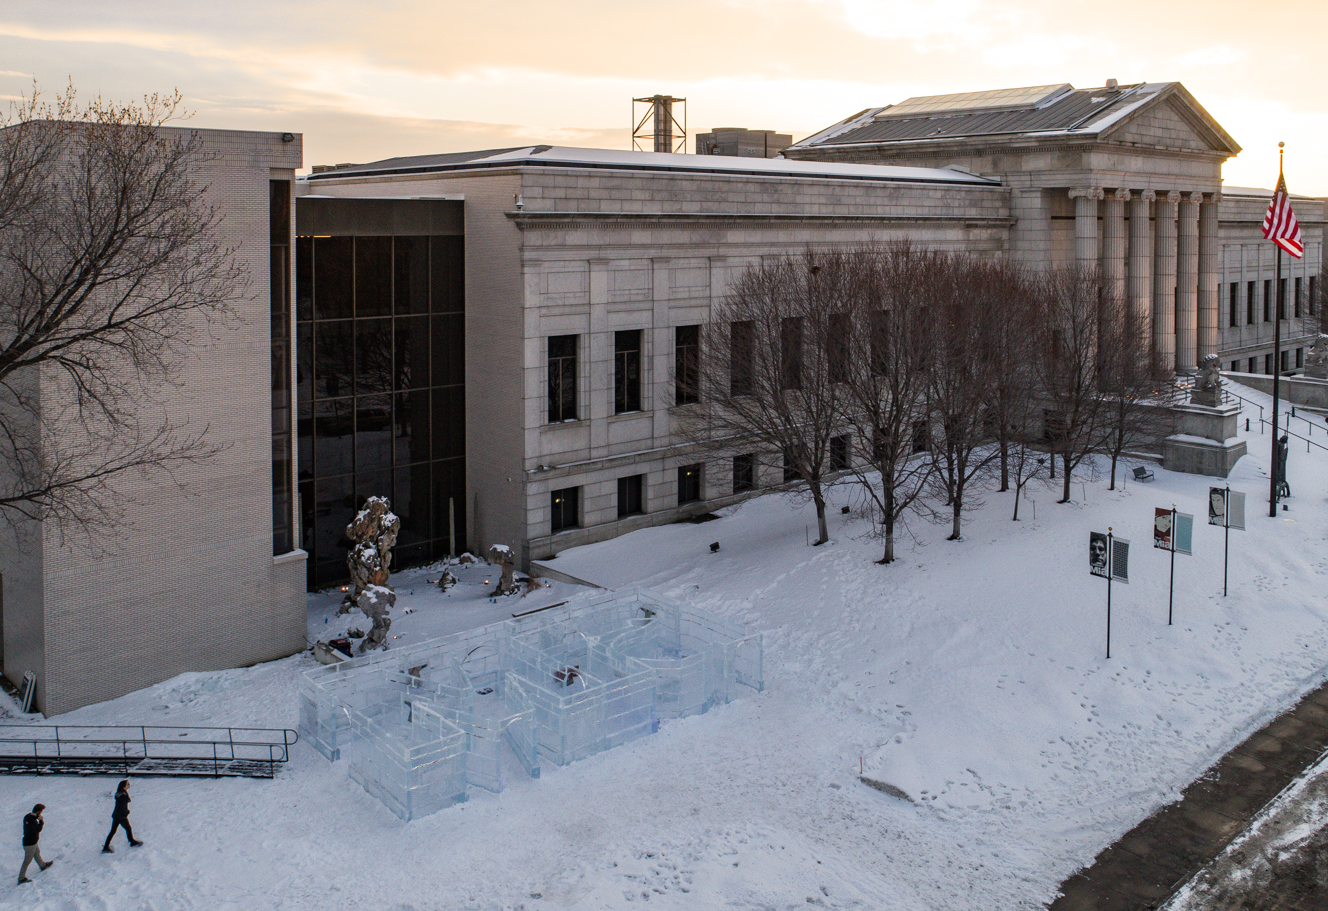 An exterior view of Mia with the ice maze in frame.